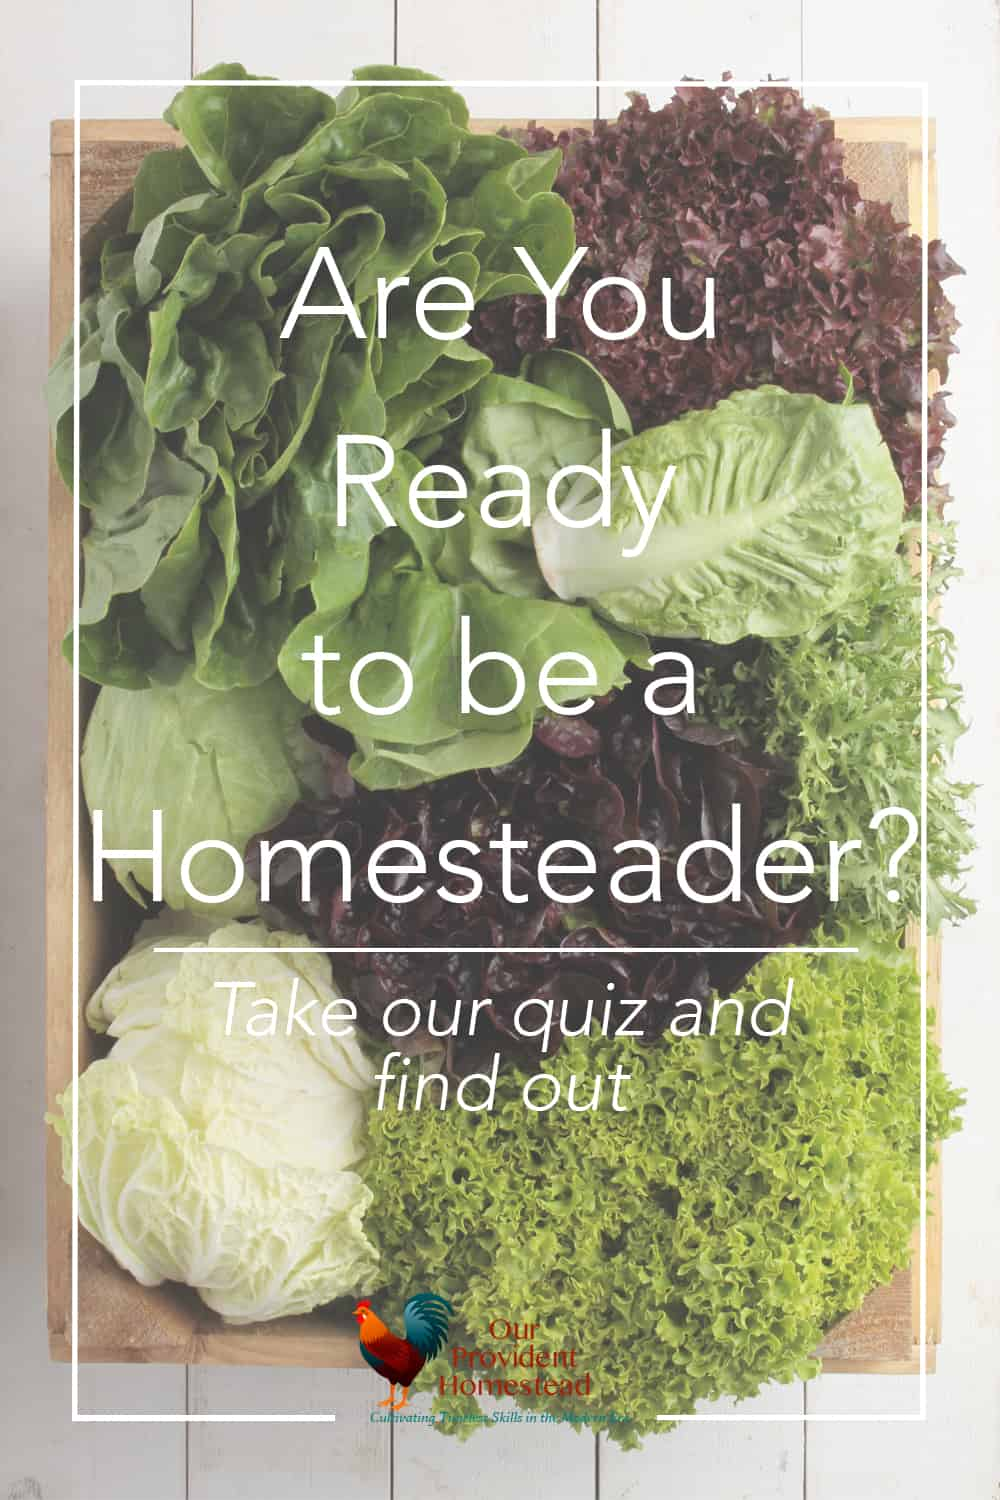 Are you ready to be a homesteader? Take our quiz and find out if you have what it takes to be a homesteader. The answer may surprise you! #homestead #homesteader #homesteading